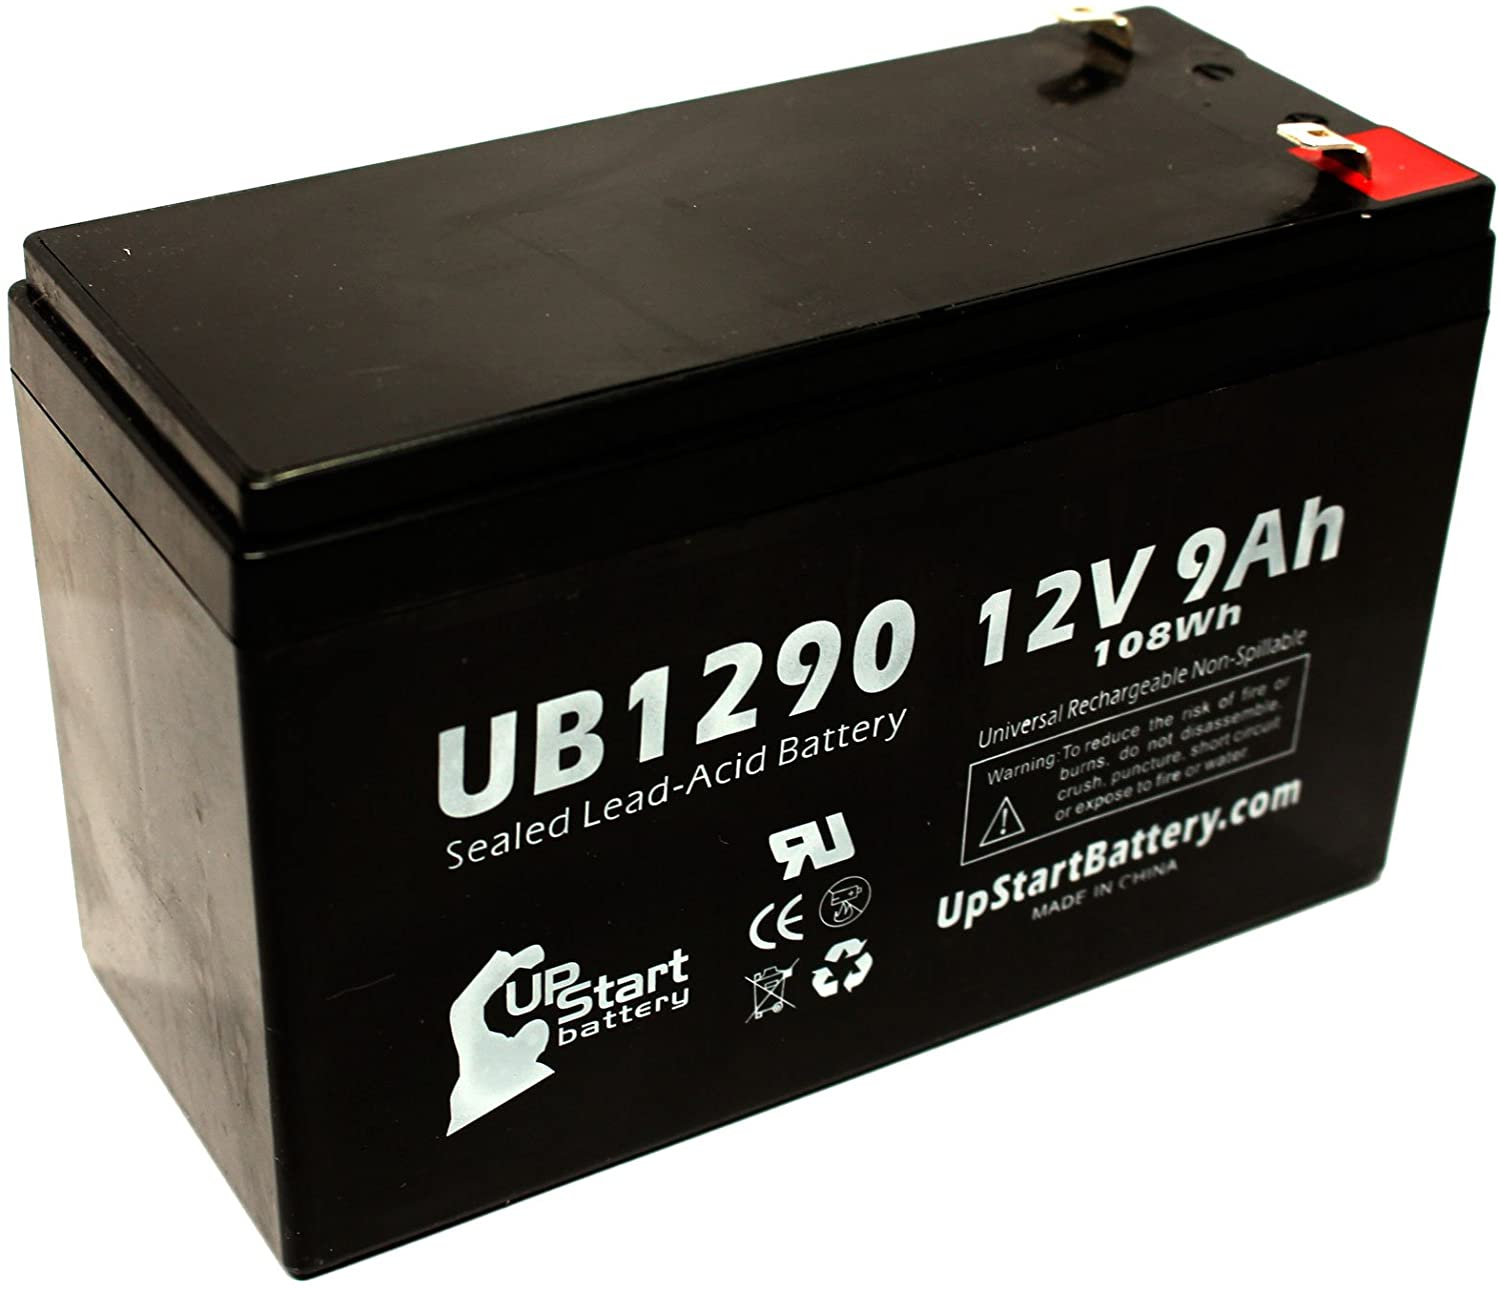 Replacement for Altronix AL300ULXR Battery - Replacement UB1290 Universal Sealed Lead Acid Battery (12V, 9Ah, 9000mAh, F1 Terminal, AGM, SLA) - Includes Two F1 to F2 Terminal Adapters